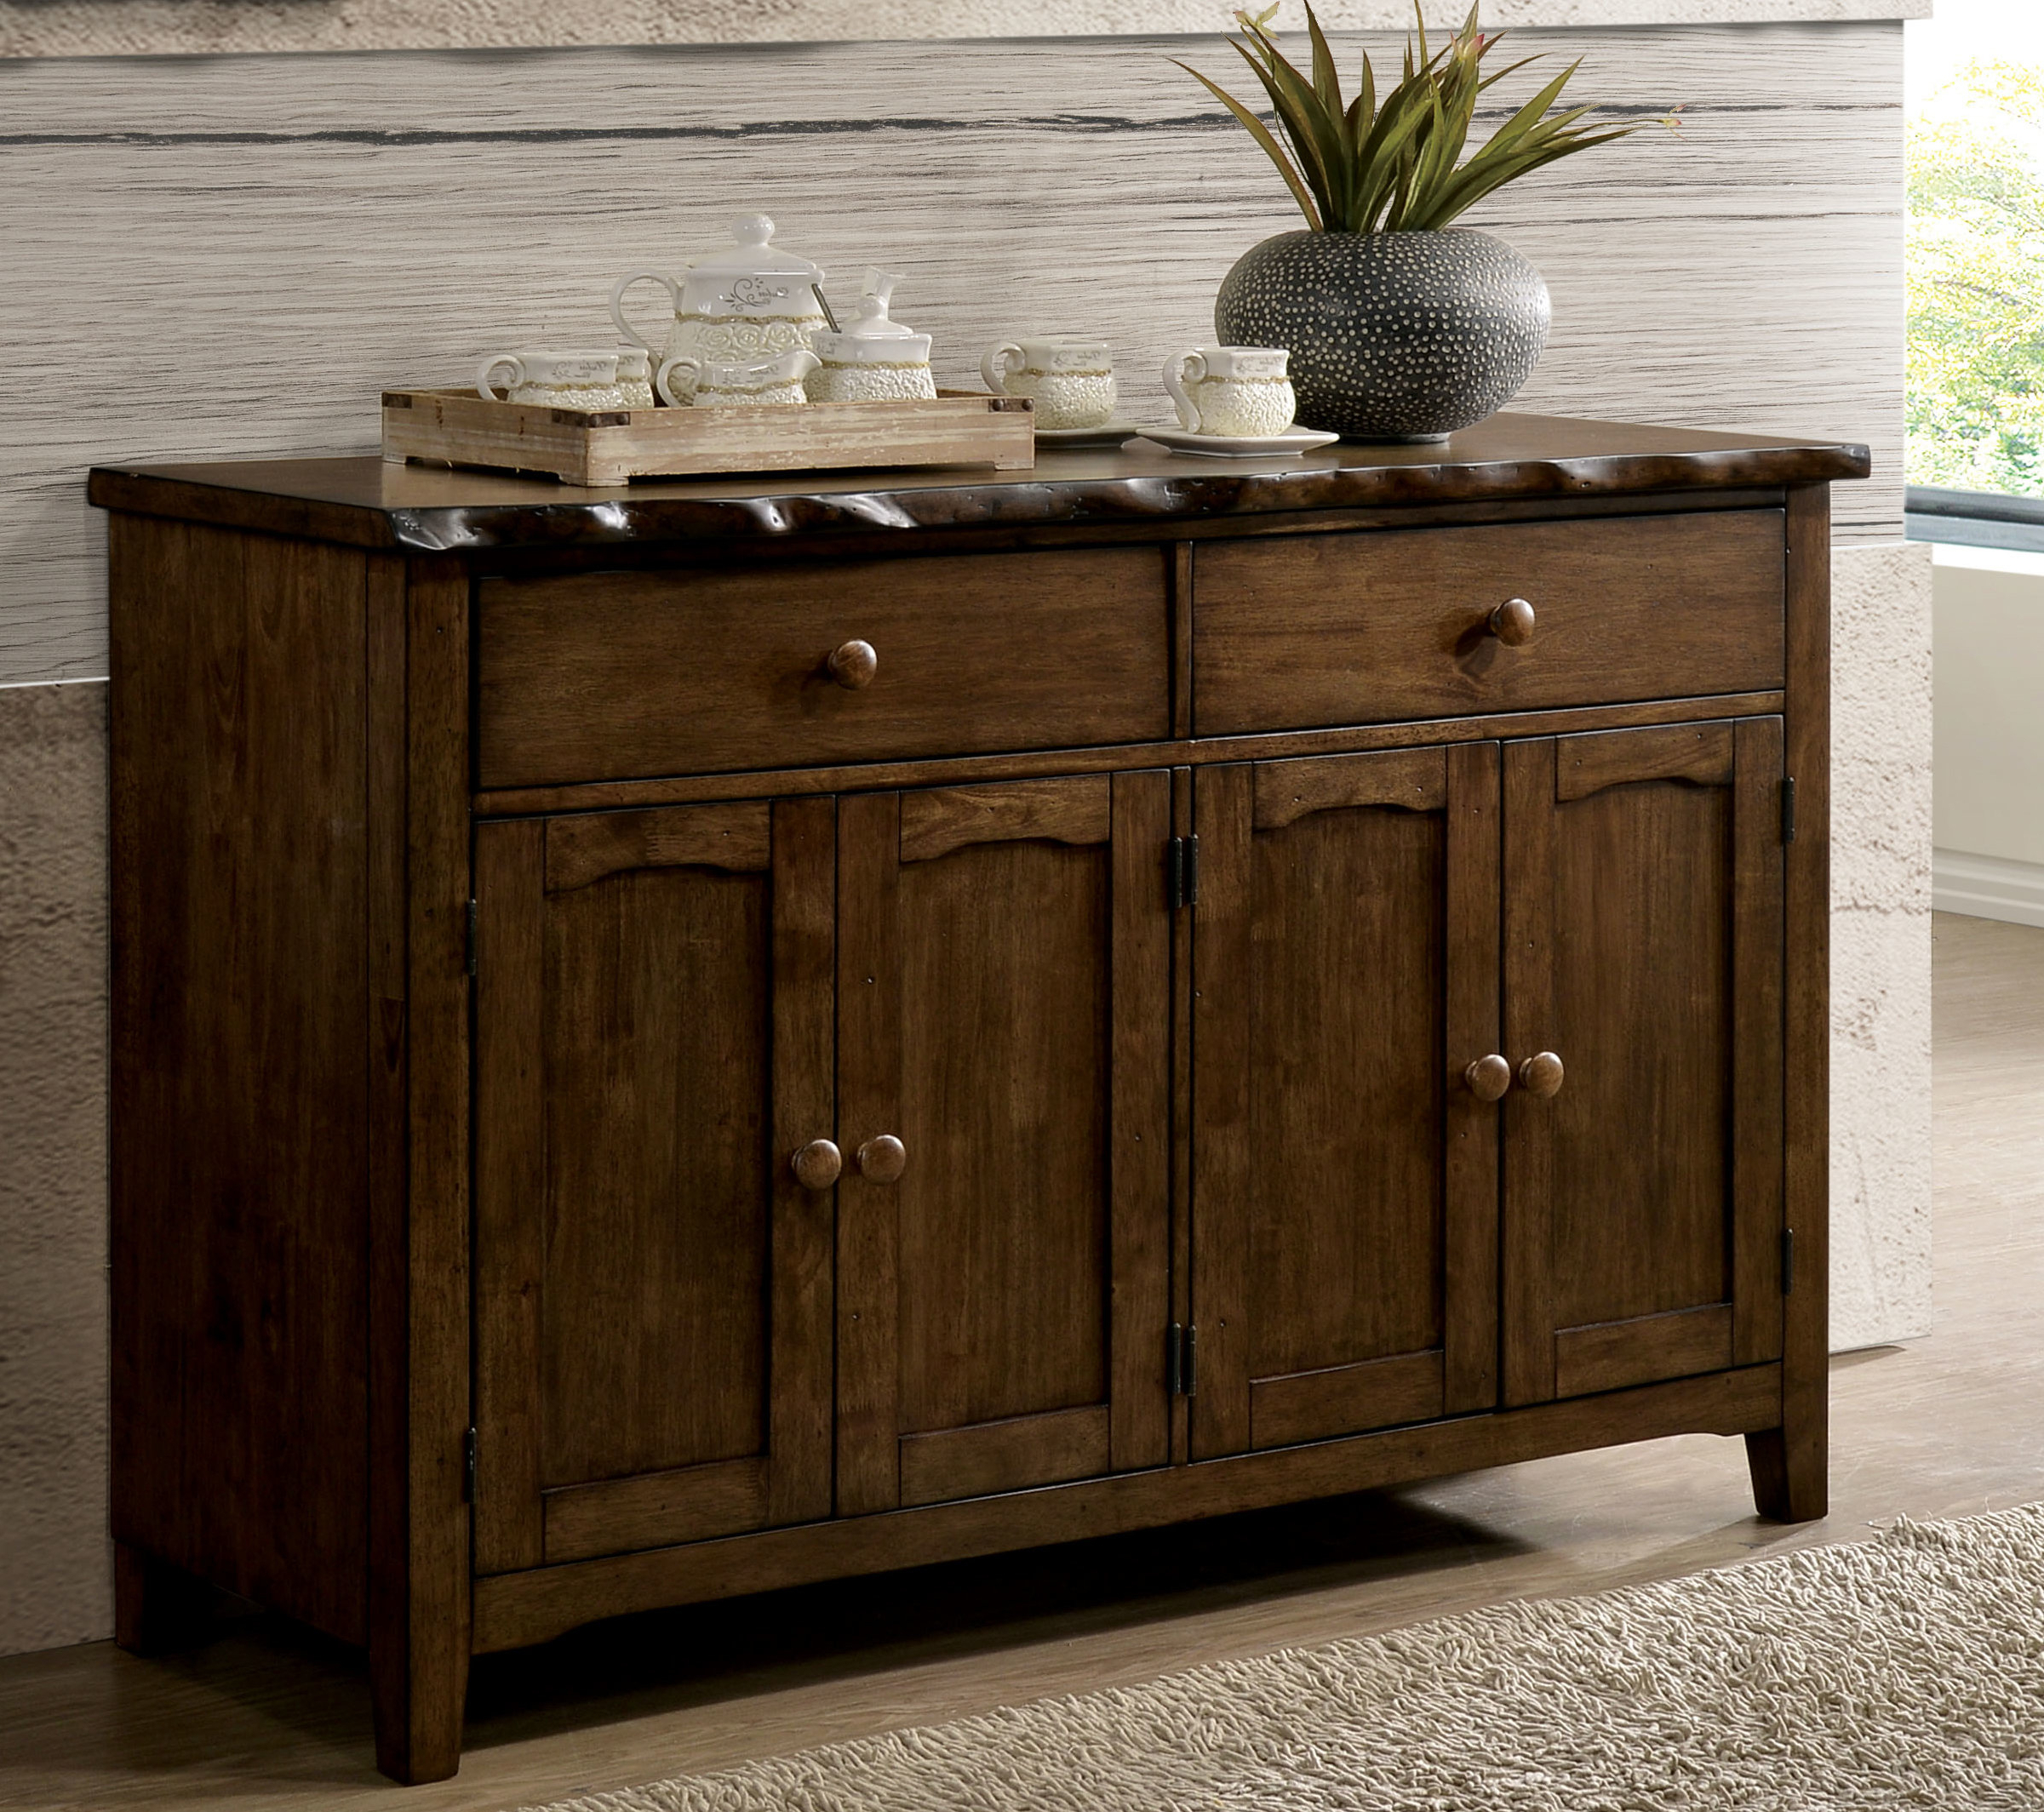 Preferred Rawson Sideboard Intended For Seiling Sideboards (Gallery 5 of 20)